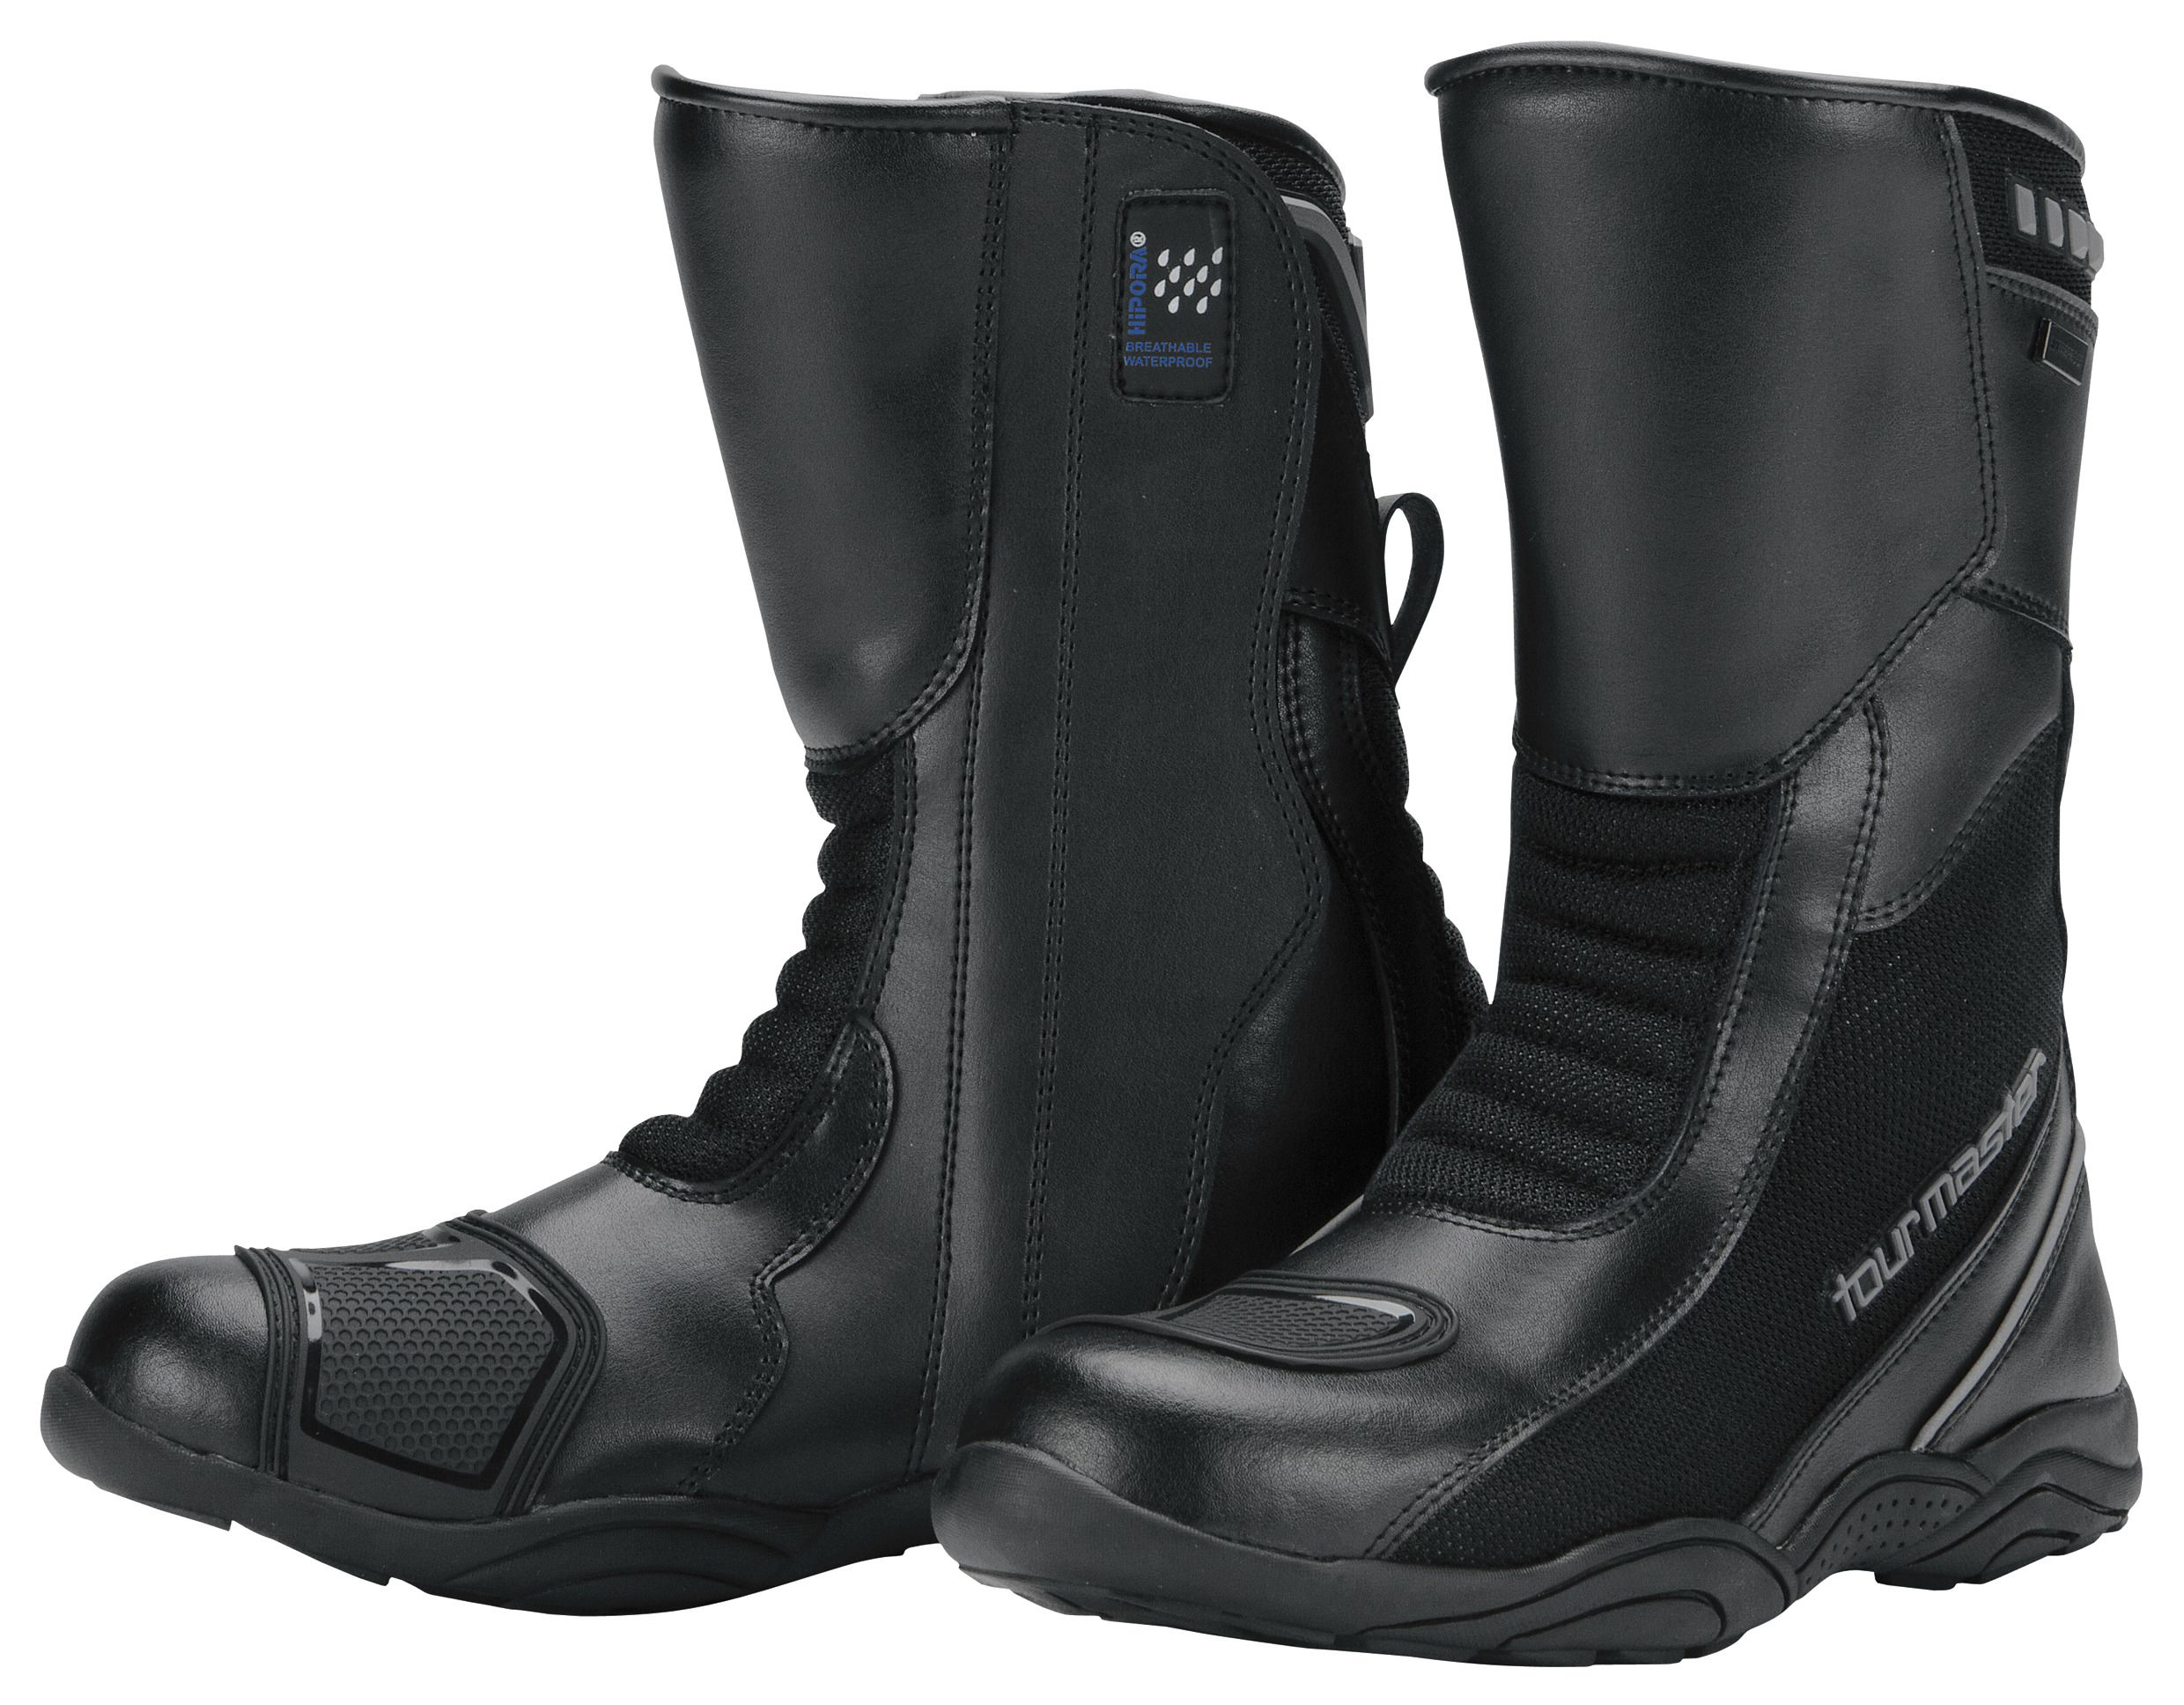 Tour Master Solution WP Air Boots - RevZilla